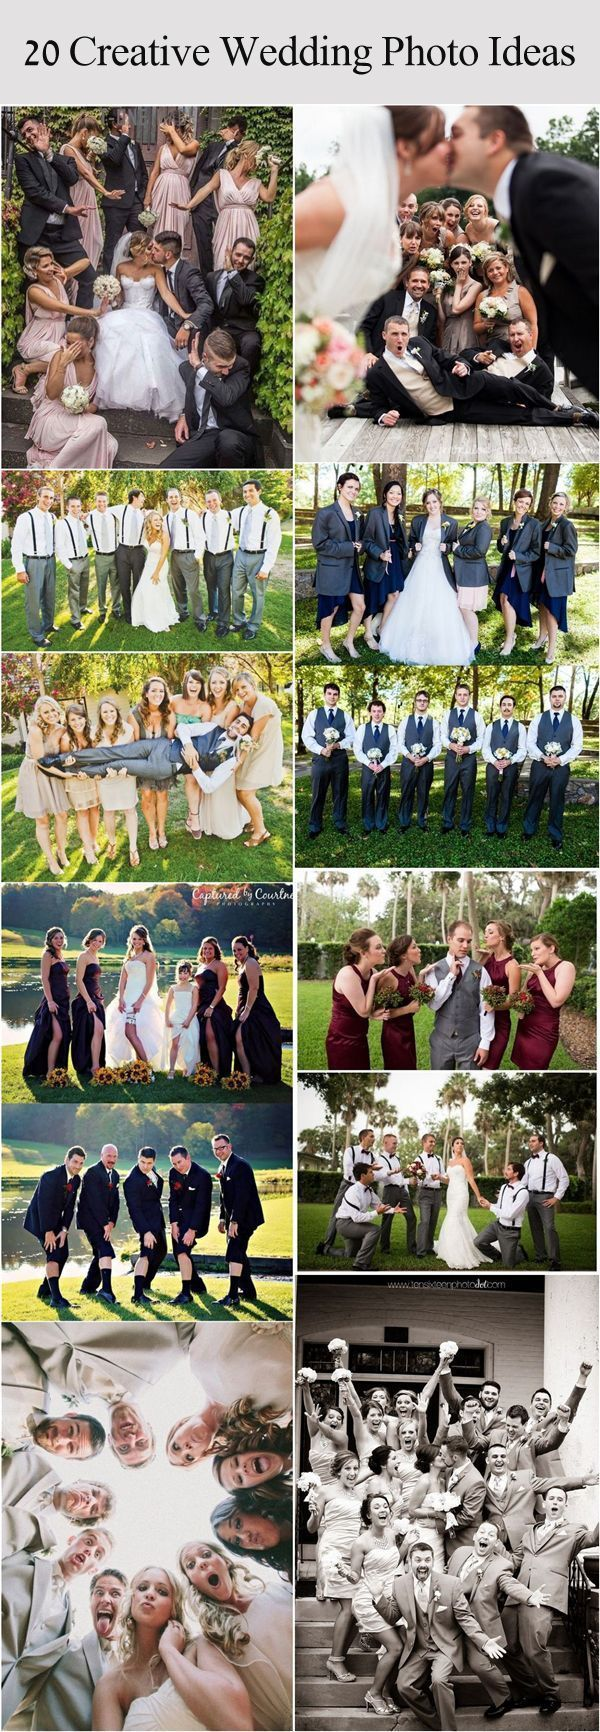 Funny wedding party photo ideas with bridesmaids and groomsmen / www.deerpearlfl... - Wedding Fotoshooting